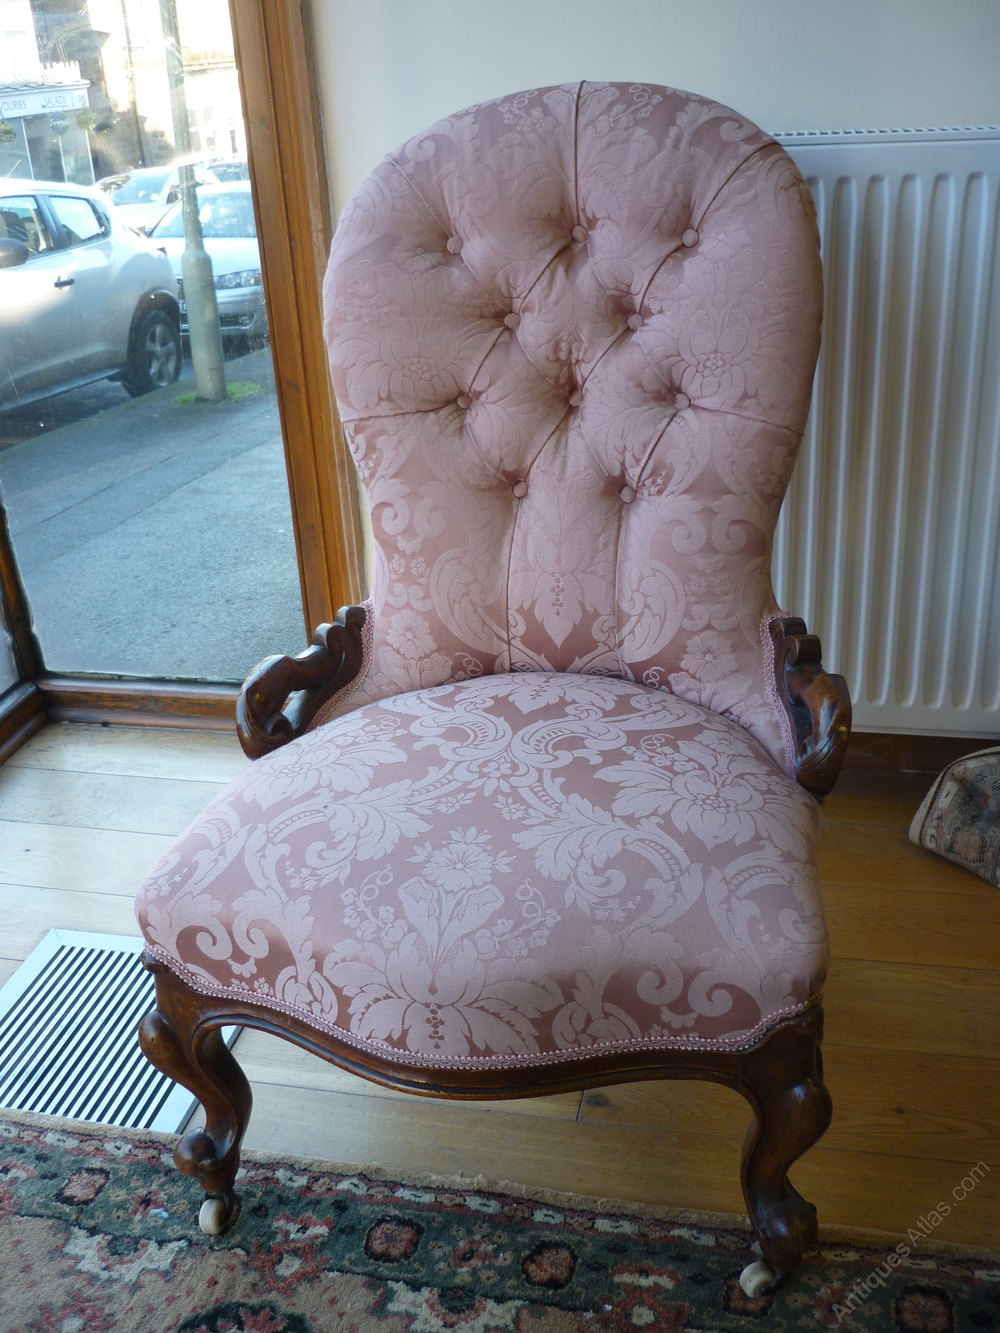 Victorian Nursing Chair, Salmon Pink Upholstery Antique ... - Victorian Nursing Chair, Salmon Pink Upholstery - Antiques Atlas